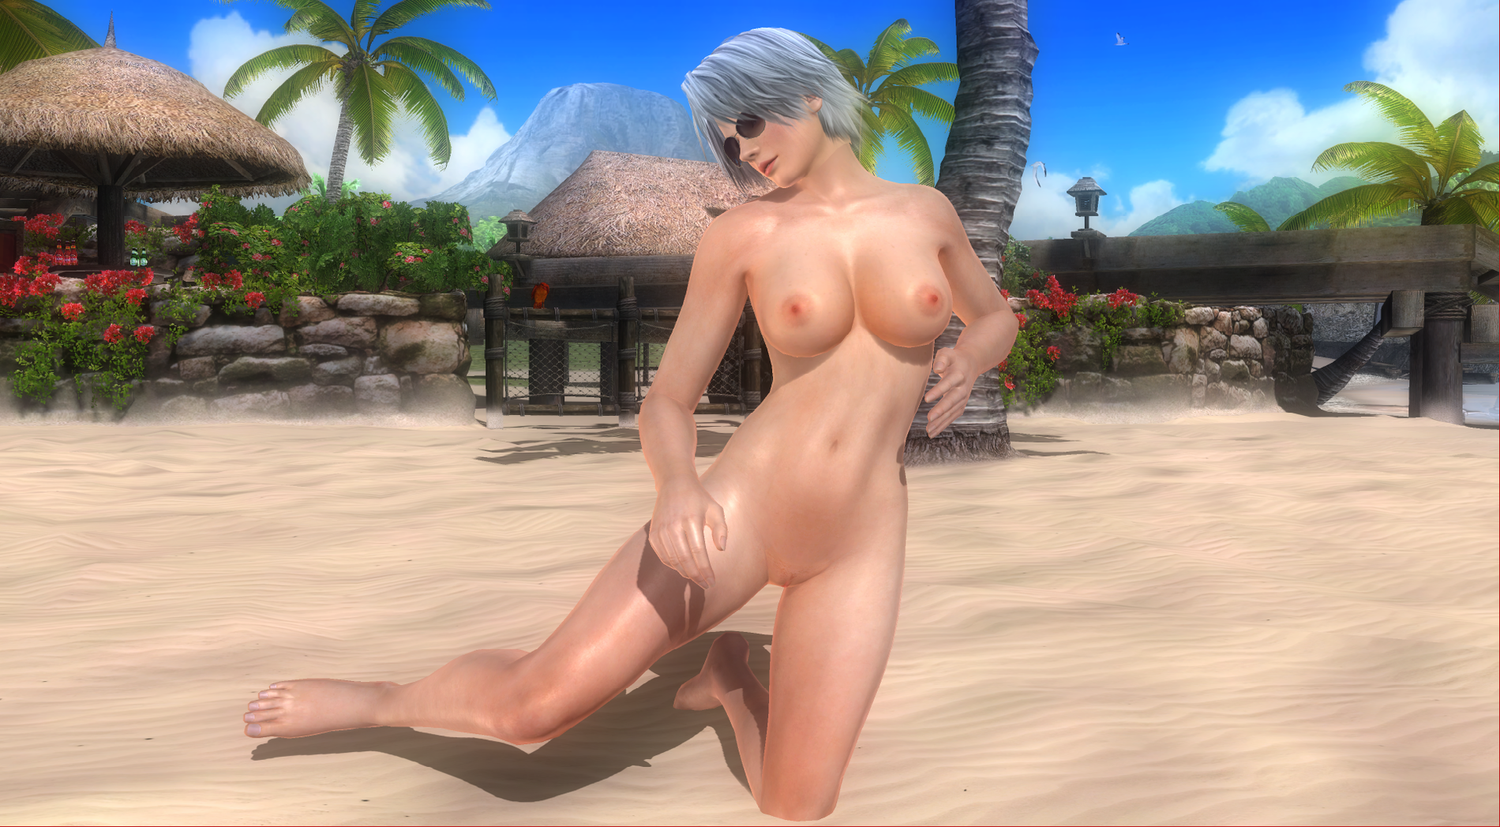 Doa5 nude download sex pretty sister